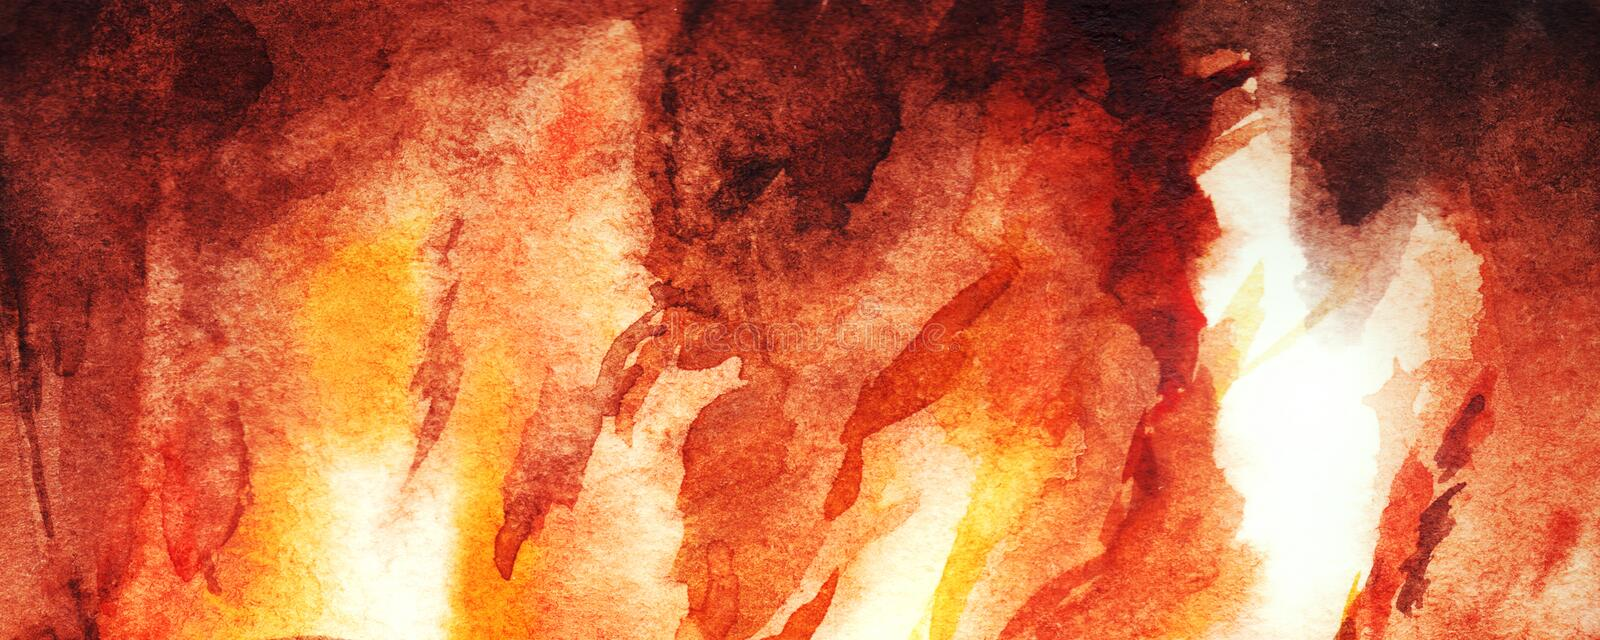 Watercolor fire flame fireplace abstract texture background.  royalty free illustration